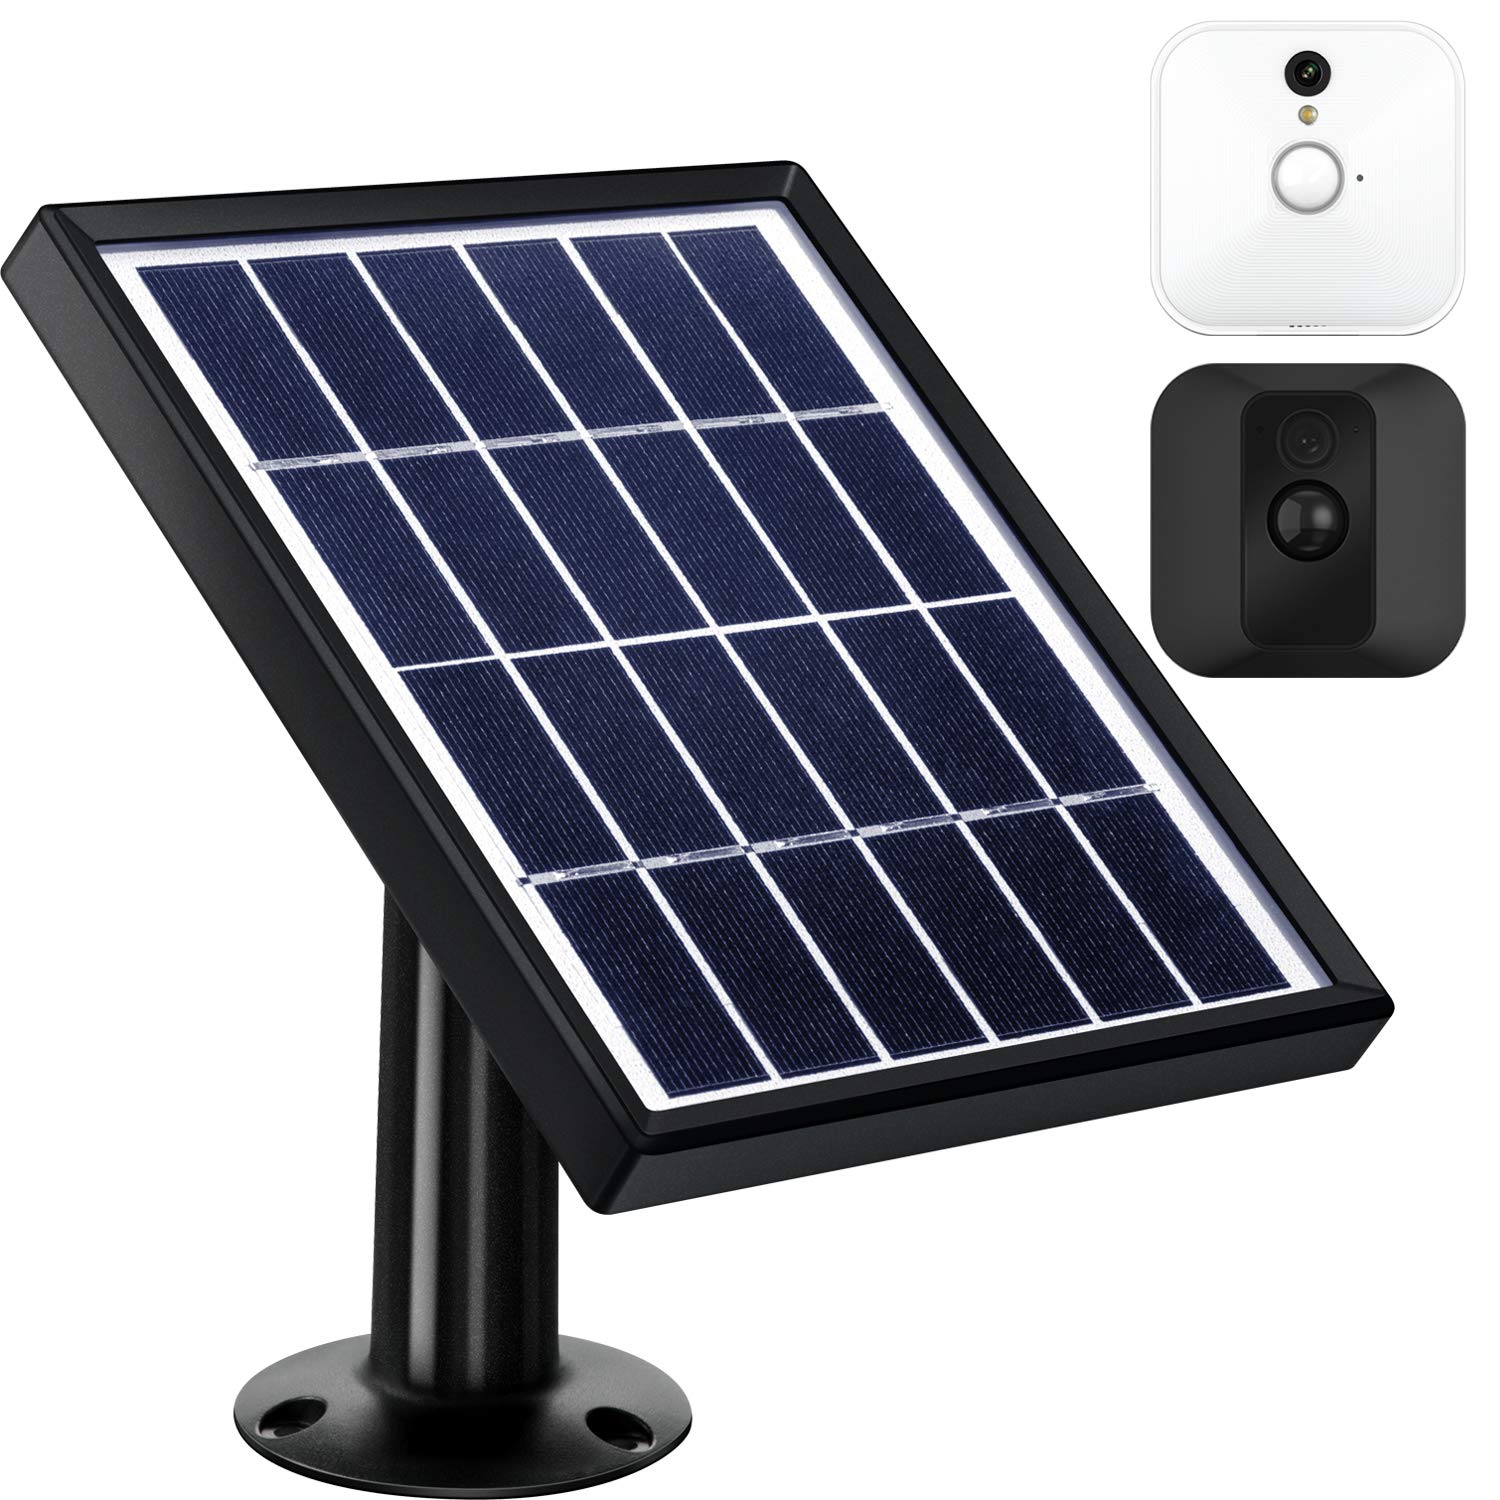 Blulu Solar Panel Compatible with Blink XT Indoor/Outdoor Security Camera with an Adjustable Mount, 12 Feet/ 3.6 m Cable, Supply Power Continuously with Solar Panel (Black)